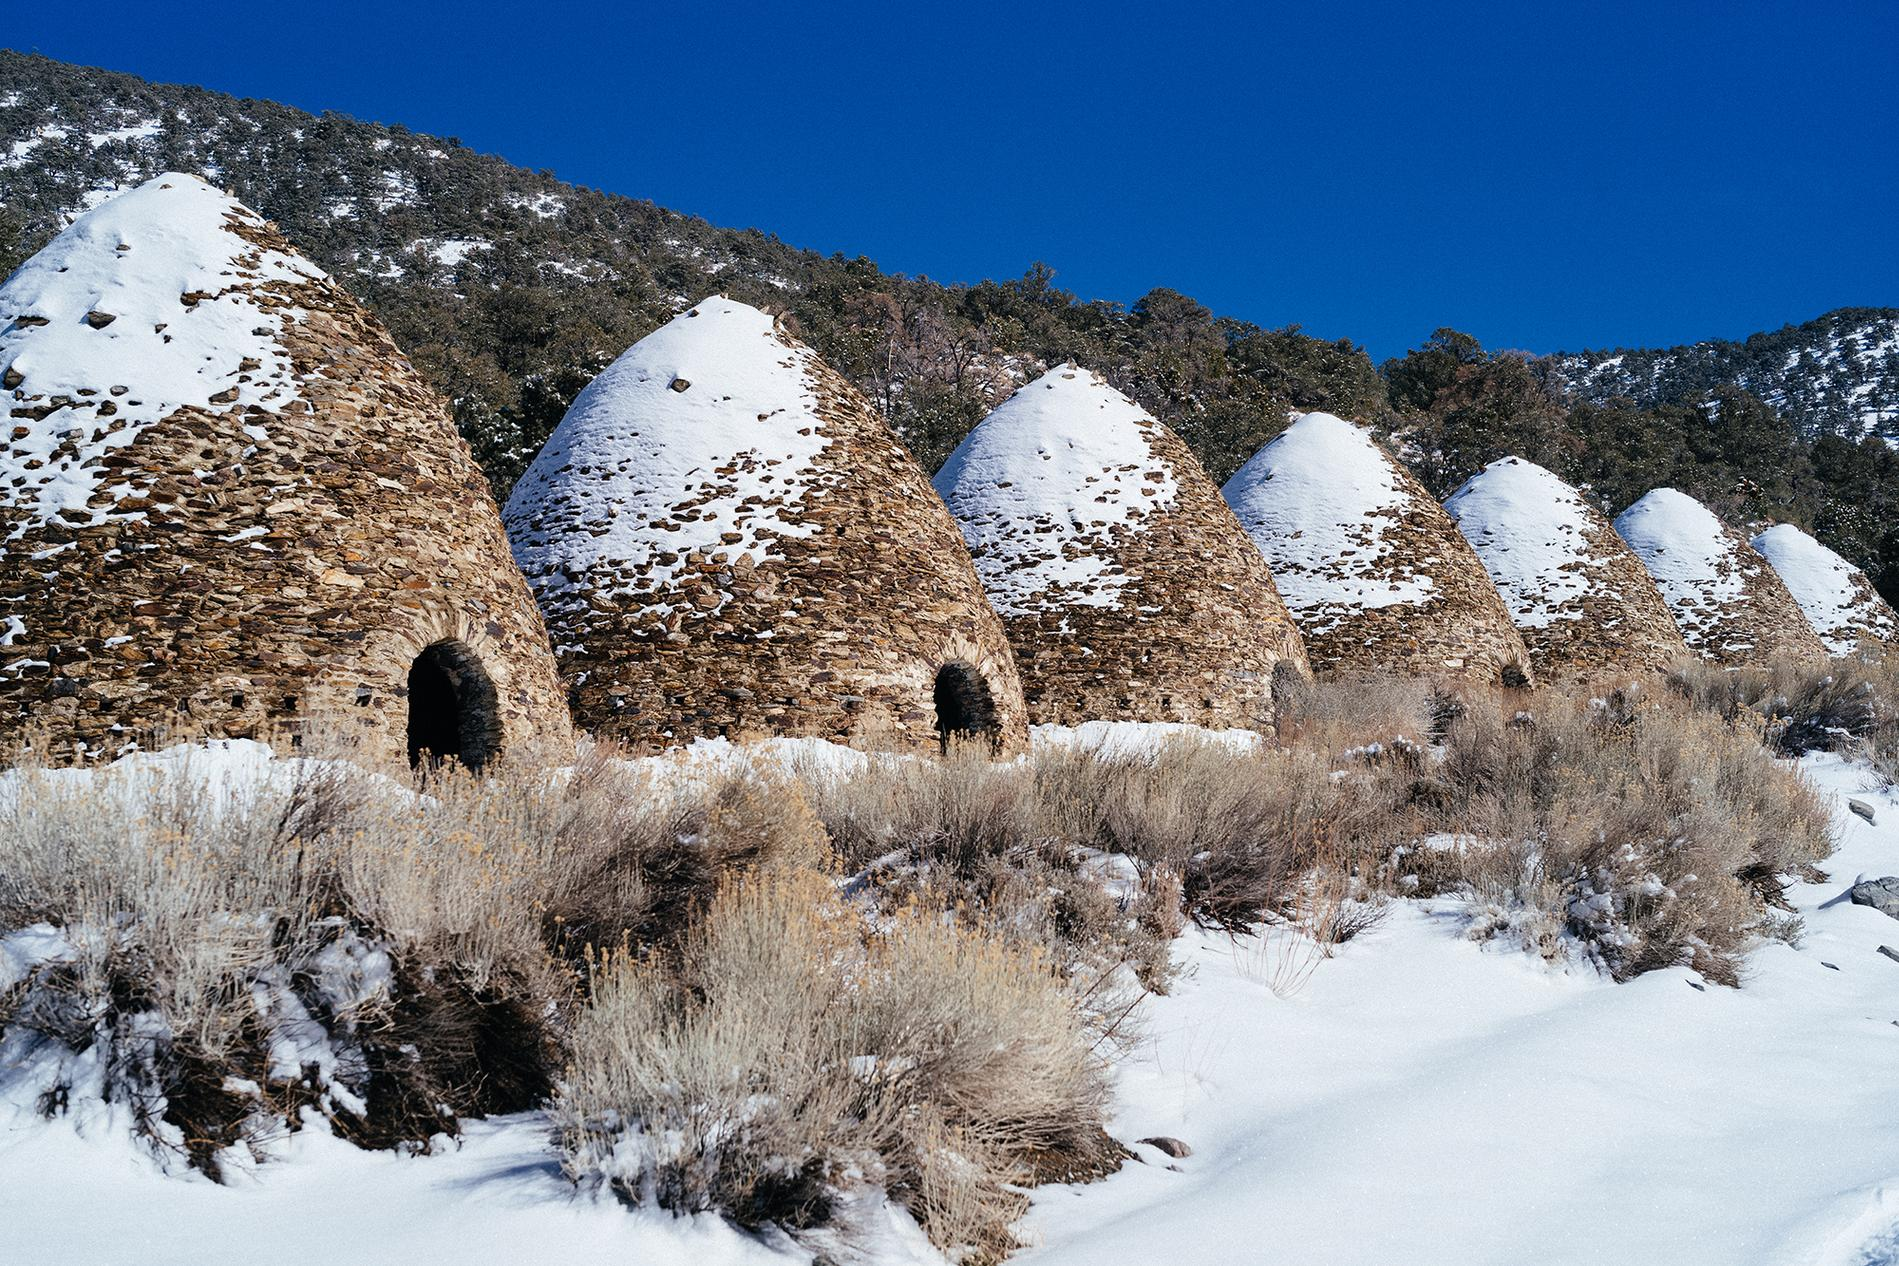 The charcoal kilns on Telescope.